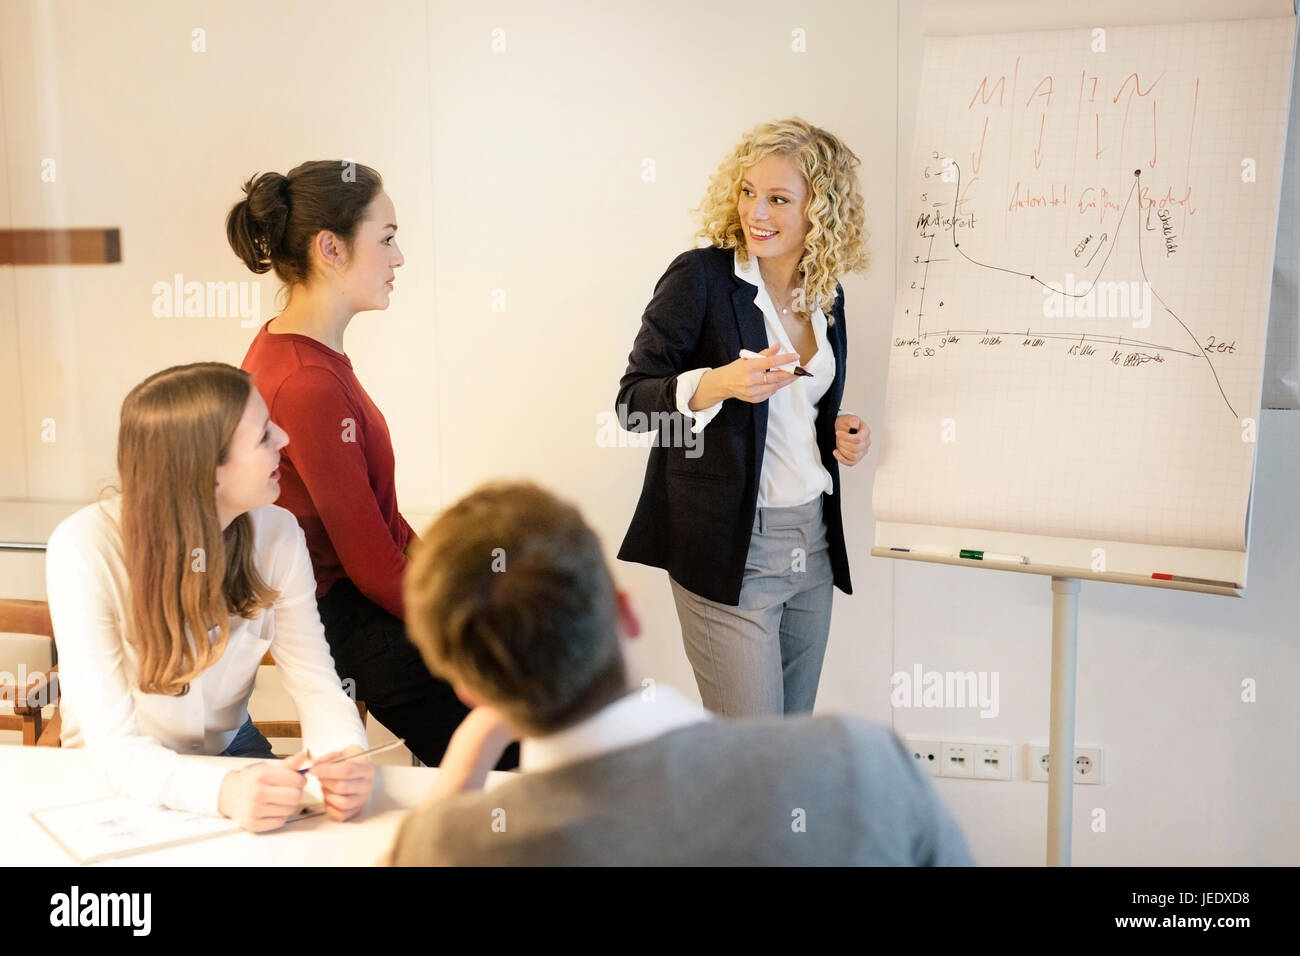 Business people attending a workshop in the office - Stock Image